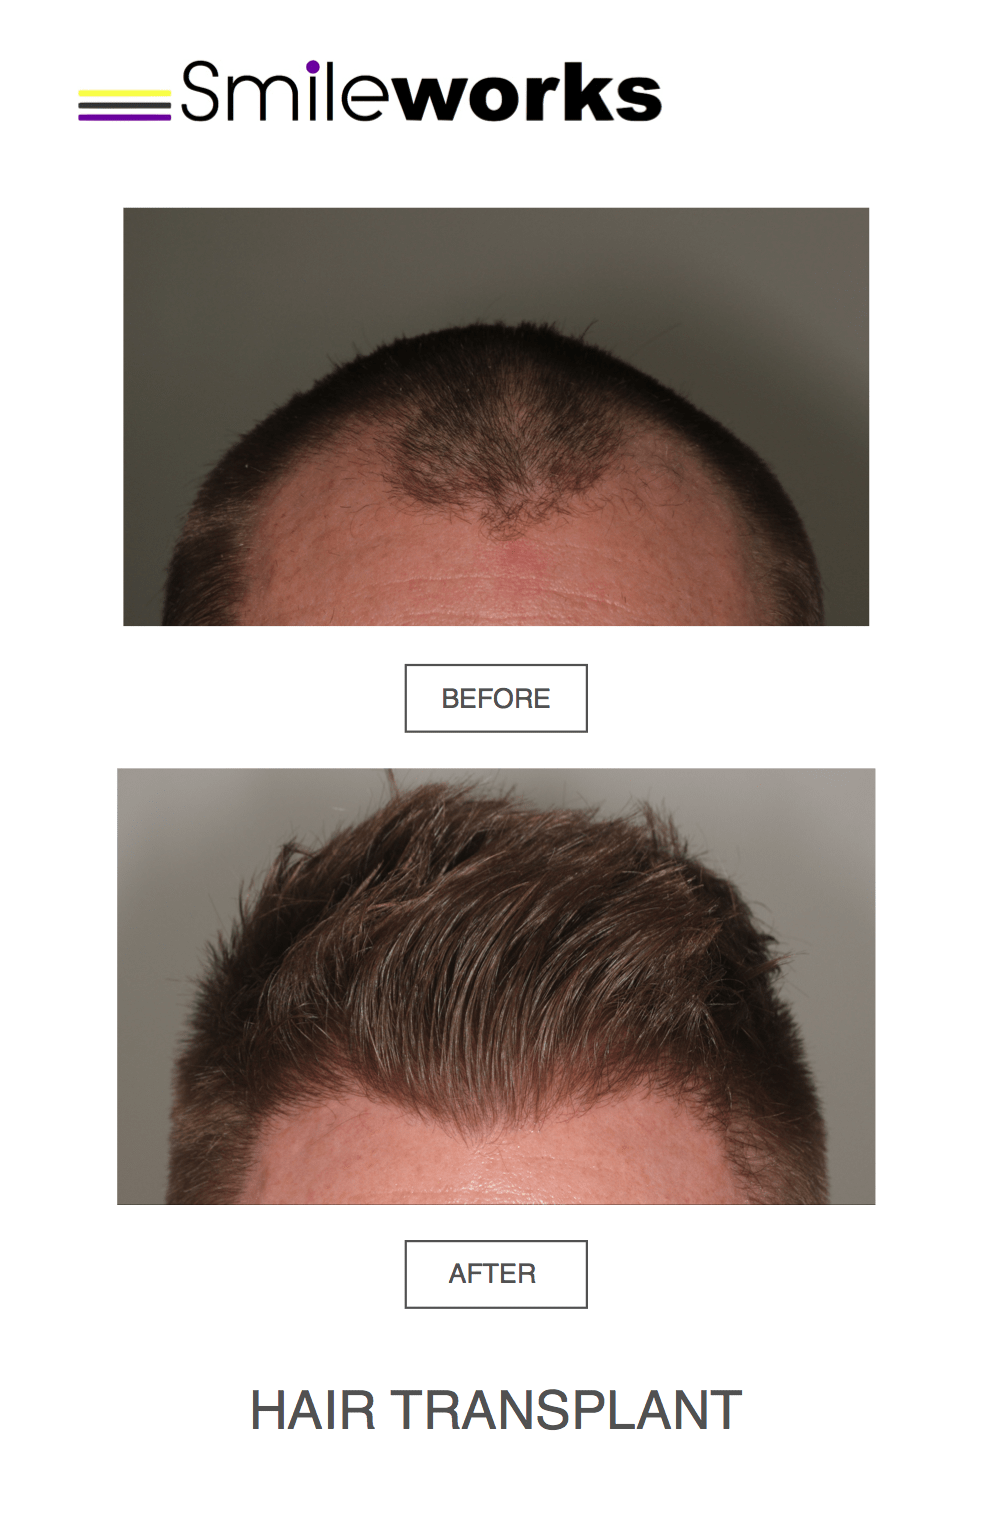 Hair transplant male norwood scale 3 before and after